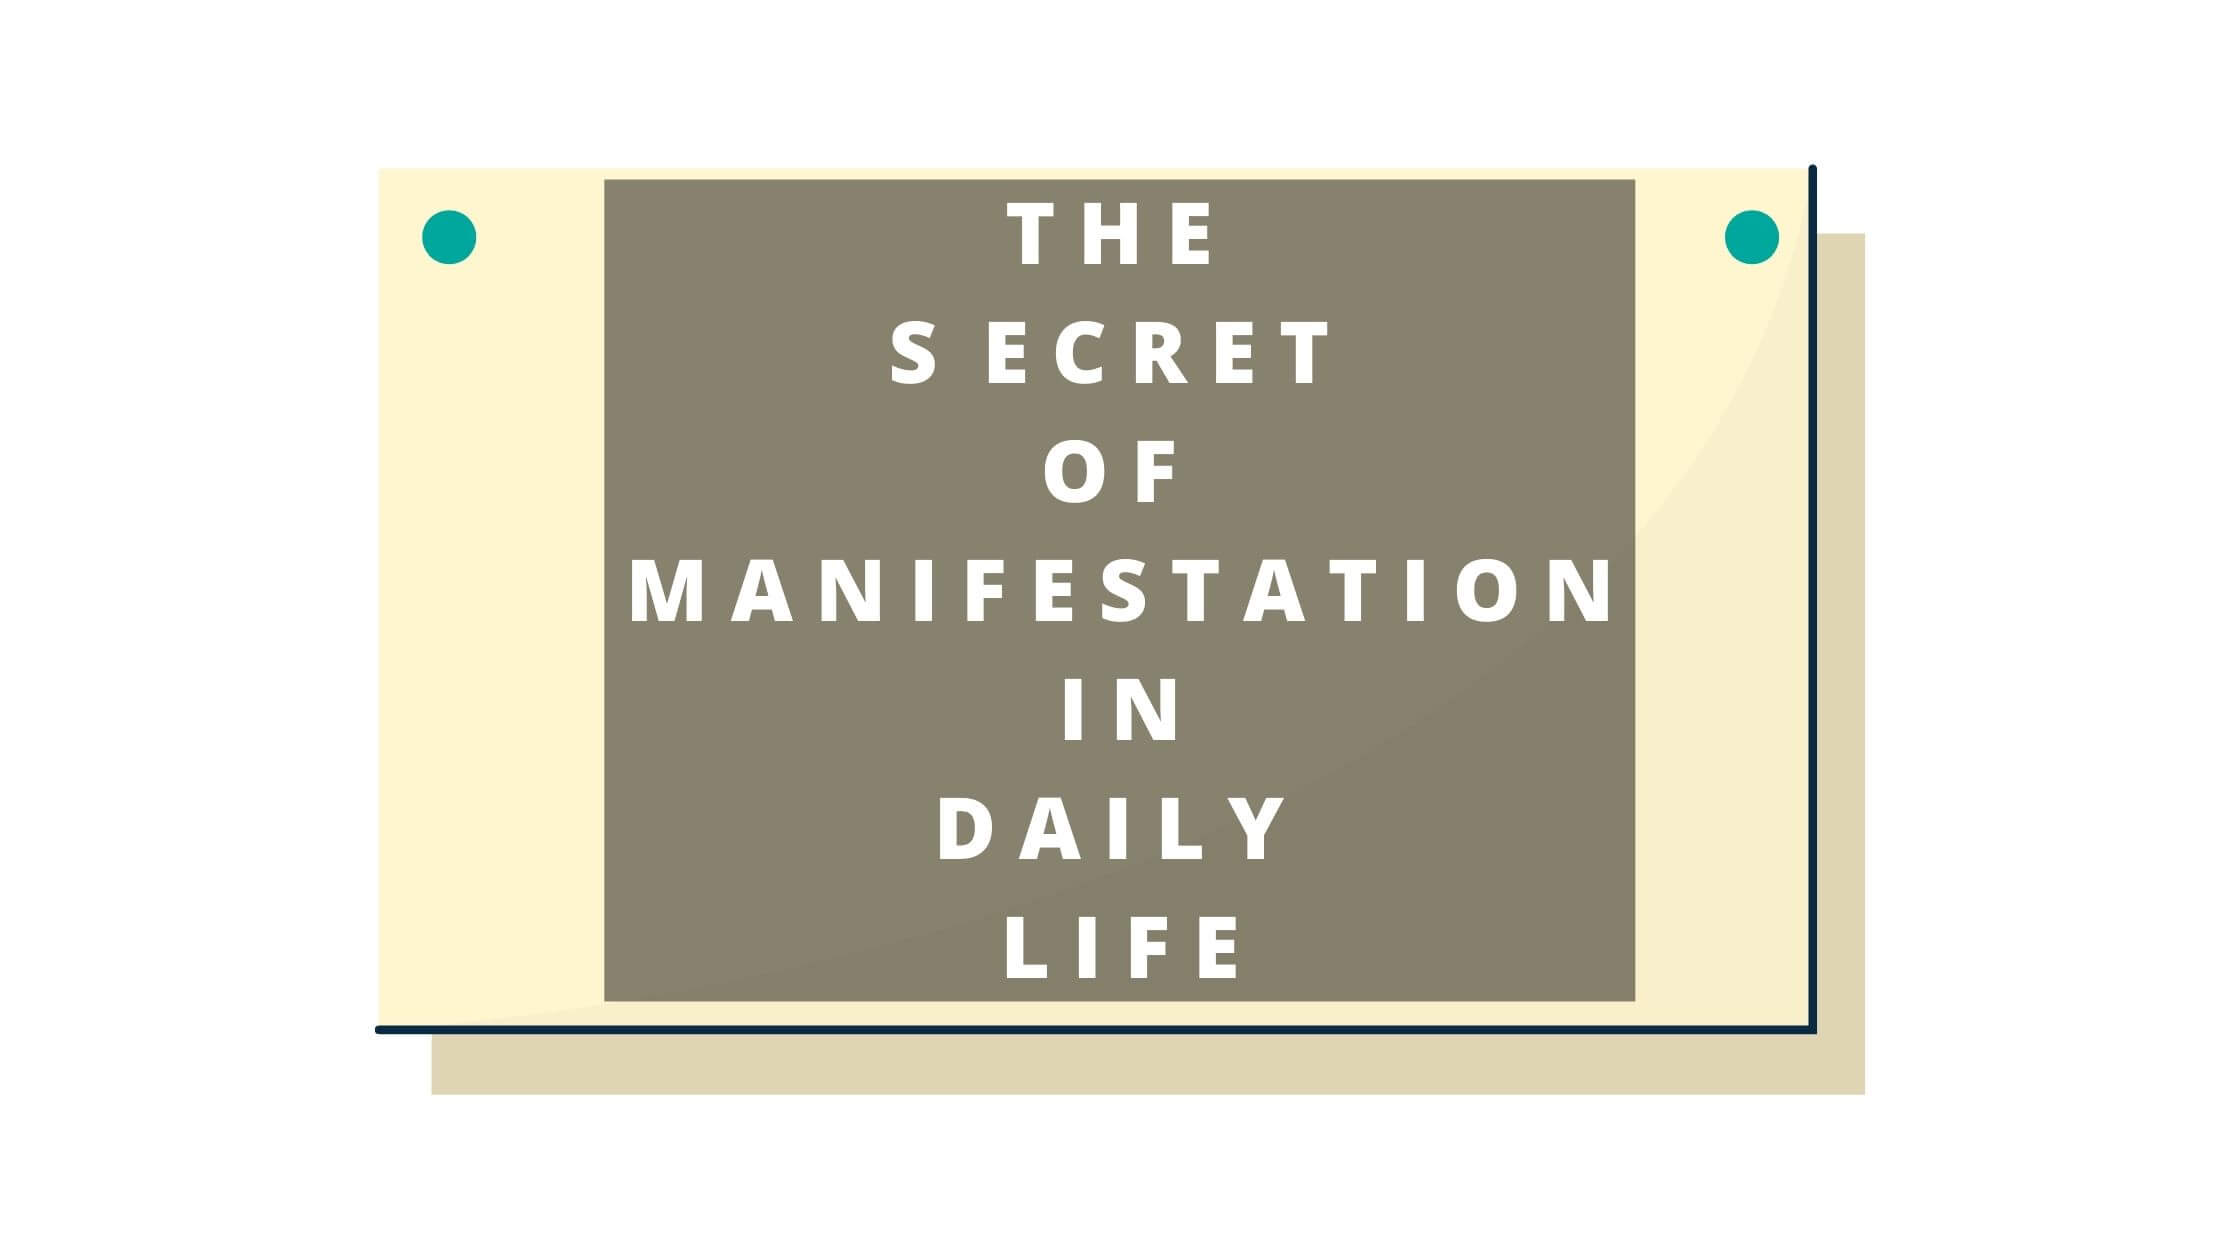 The Secret Of Manifestation In Daily Life